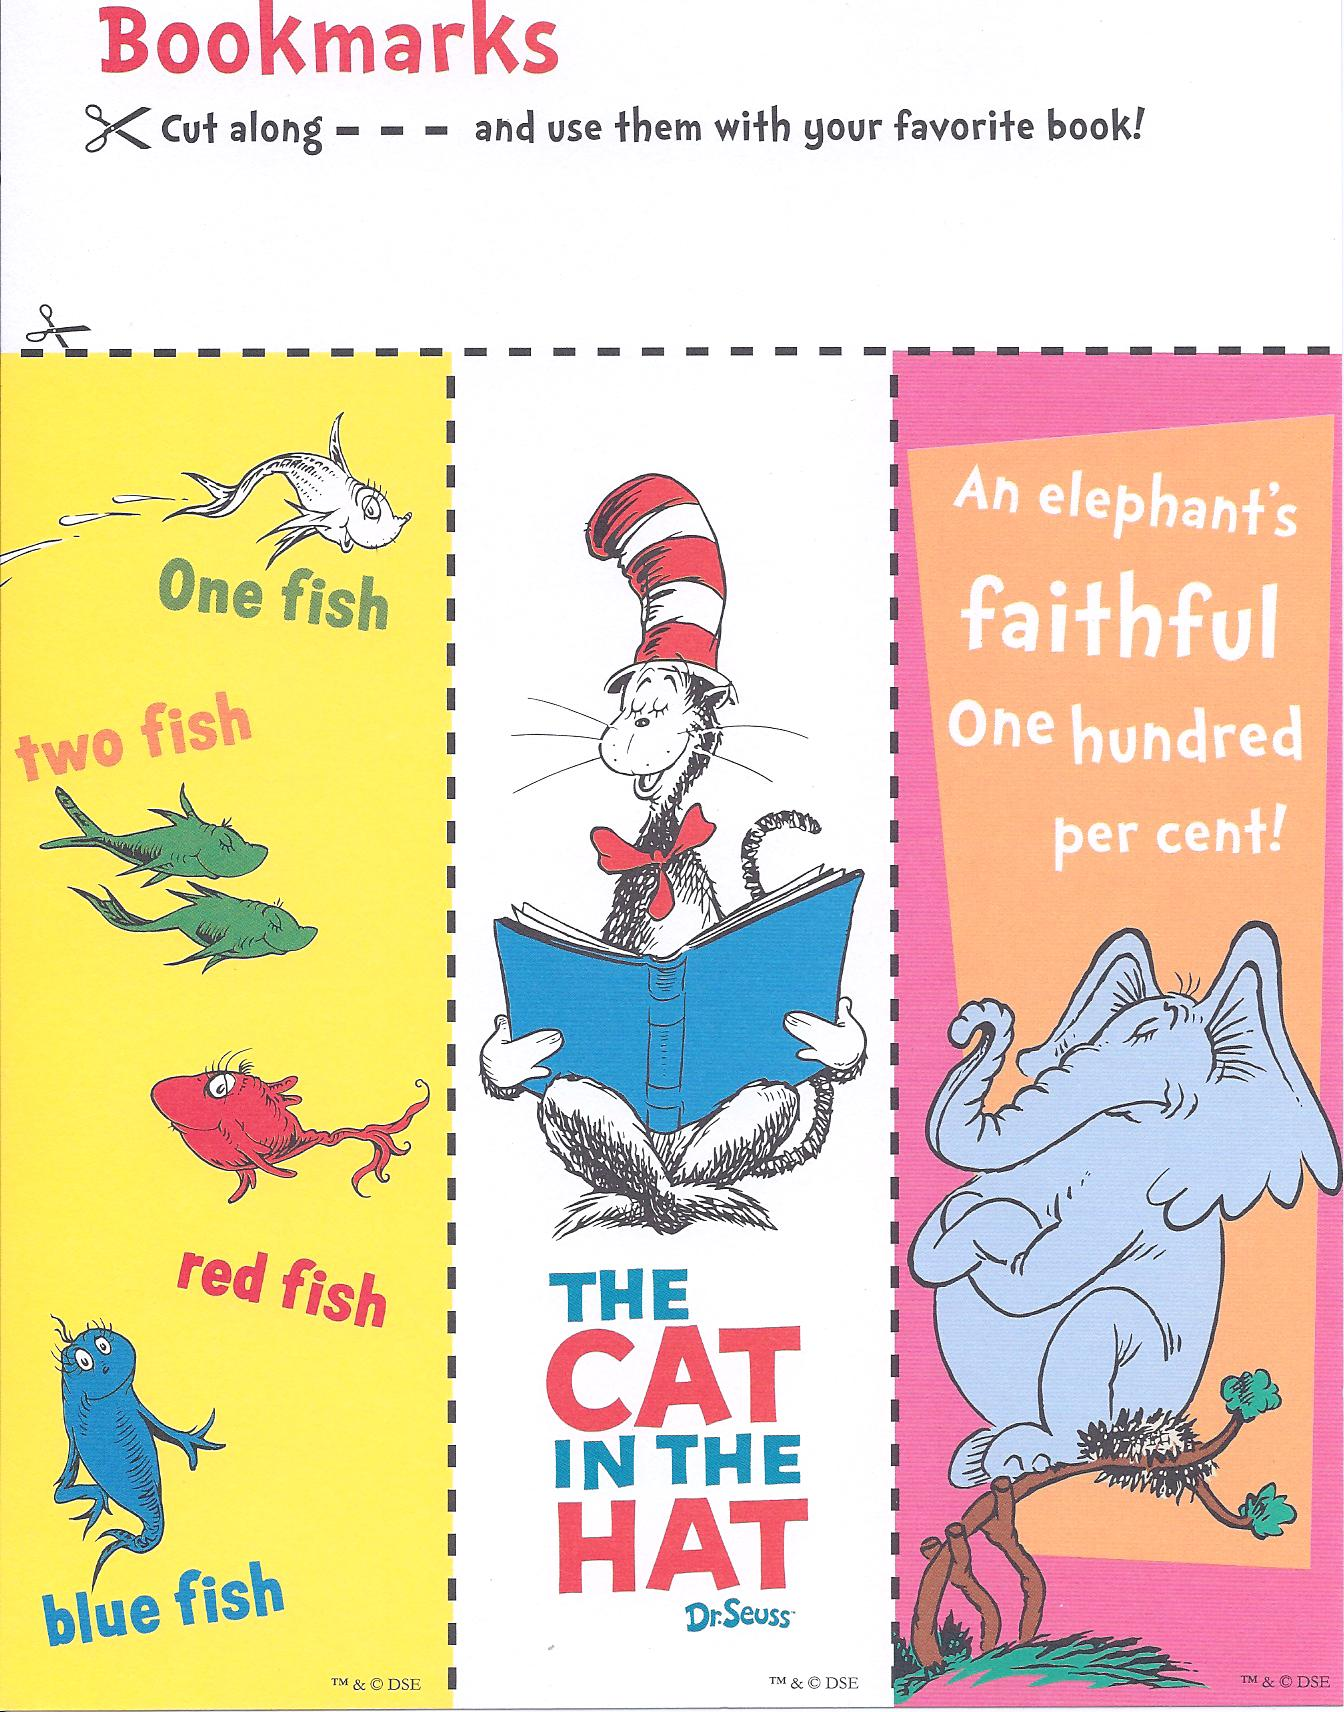 Free-Printable-Dr-Seuss-Printable-Bookmarks-these-are